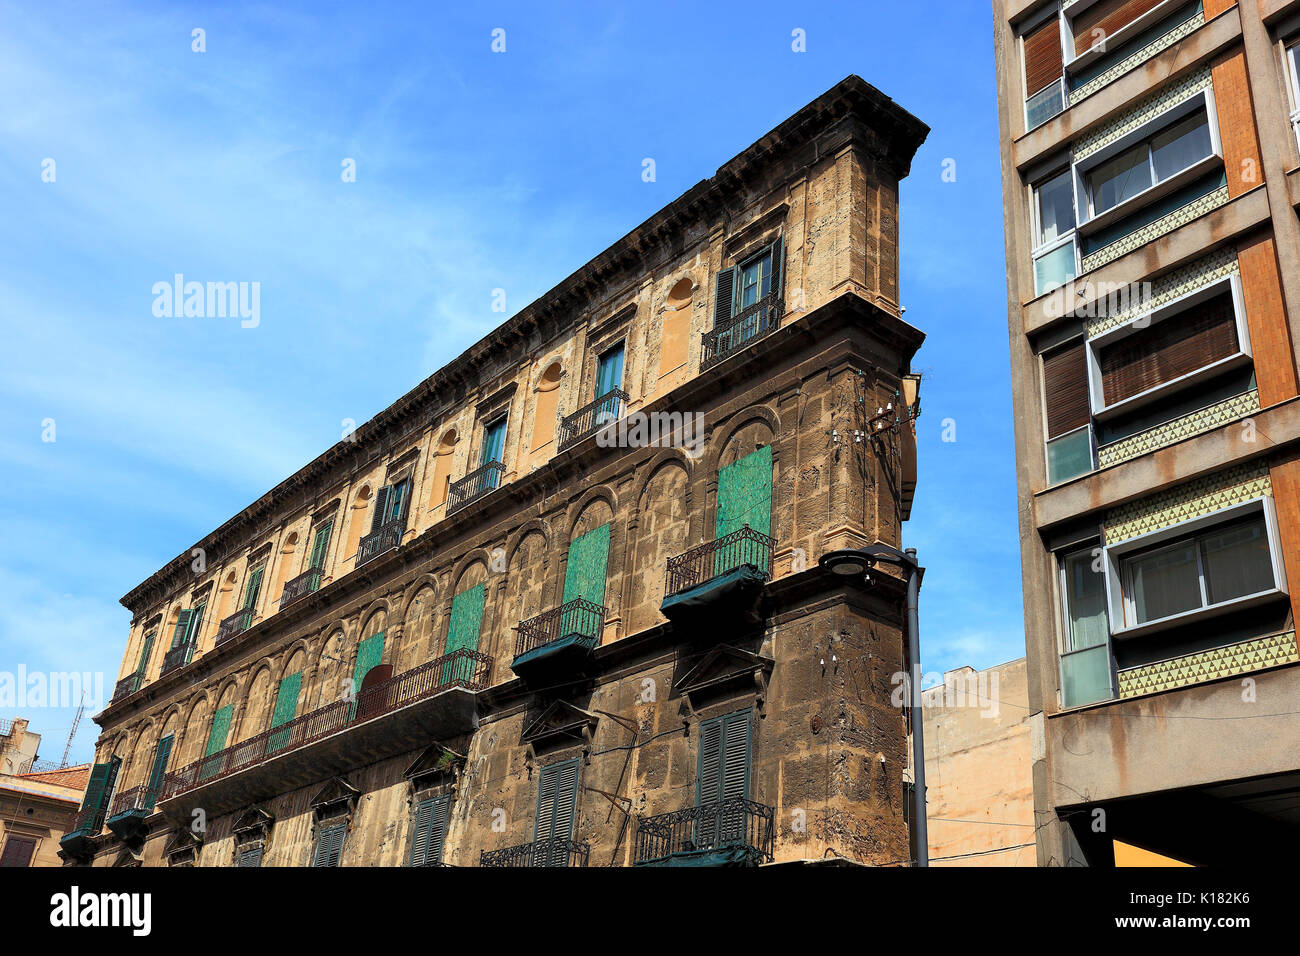 Sicily, house facade in the old town of Palermo Stock Photo ...